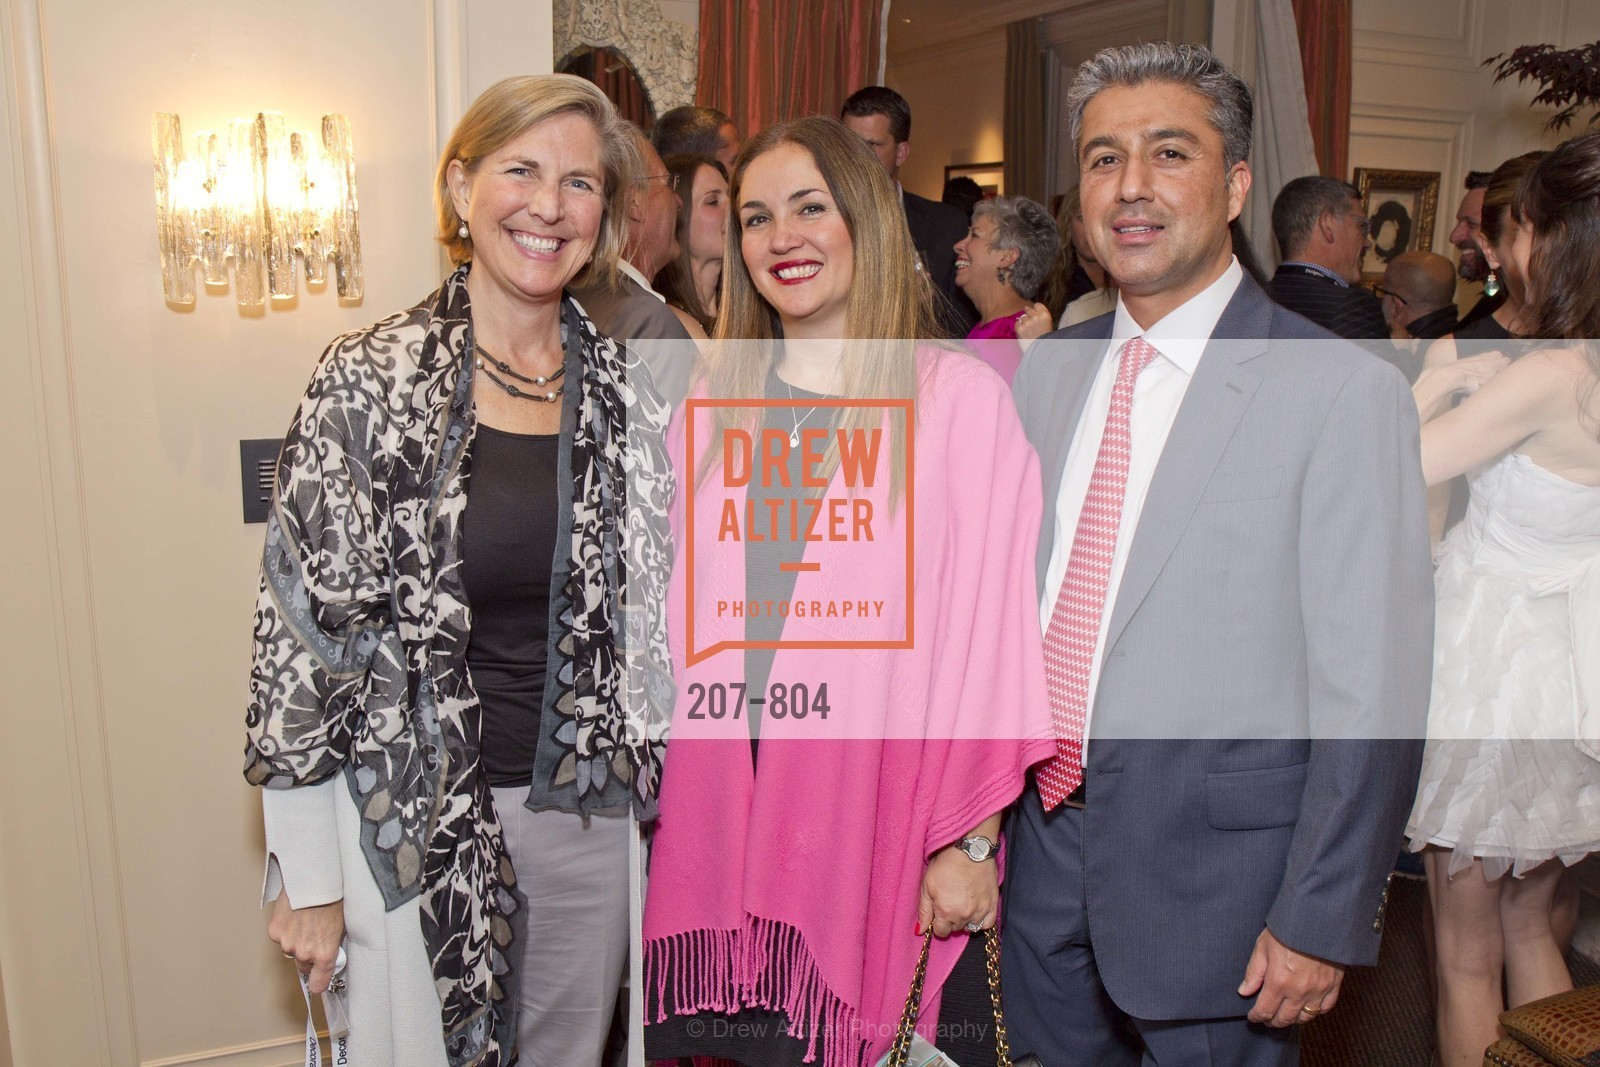 Julia Eells, Patty Ehsan, David Ehsan, San Francisco Decorator Showcase Opening Night Party, US, April 25th, 2015,Drew Altizer, Drew Altizer Photography, full-service agency, private events, San Francisco photographer, photographer california